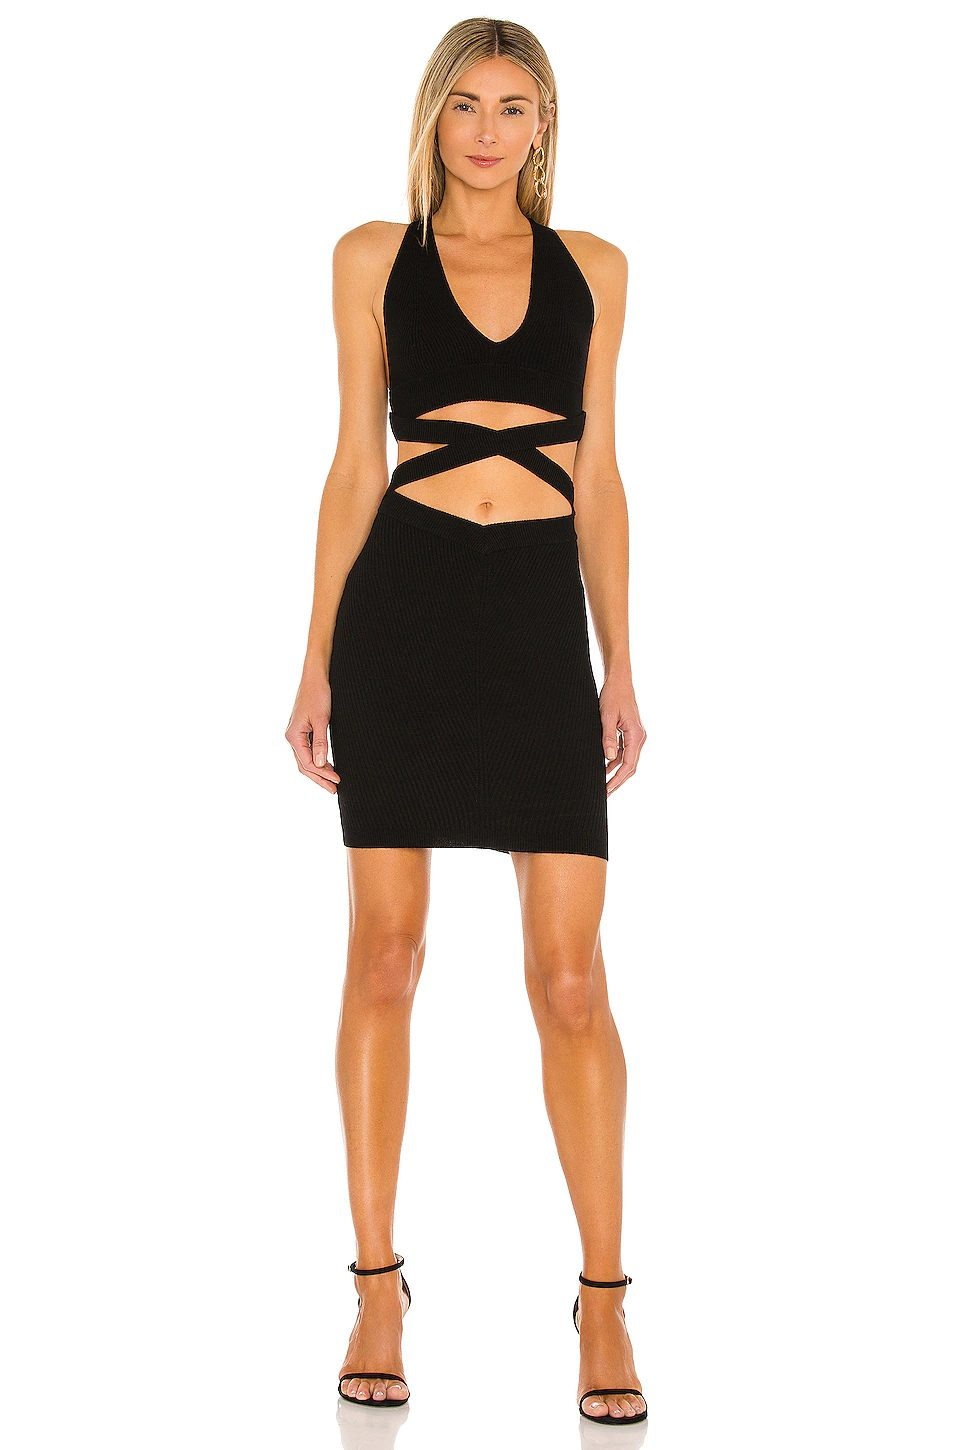 Black cut out going out dress